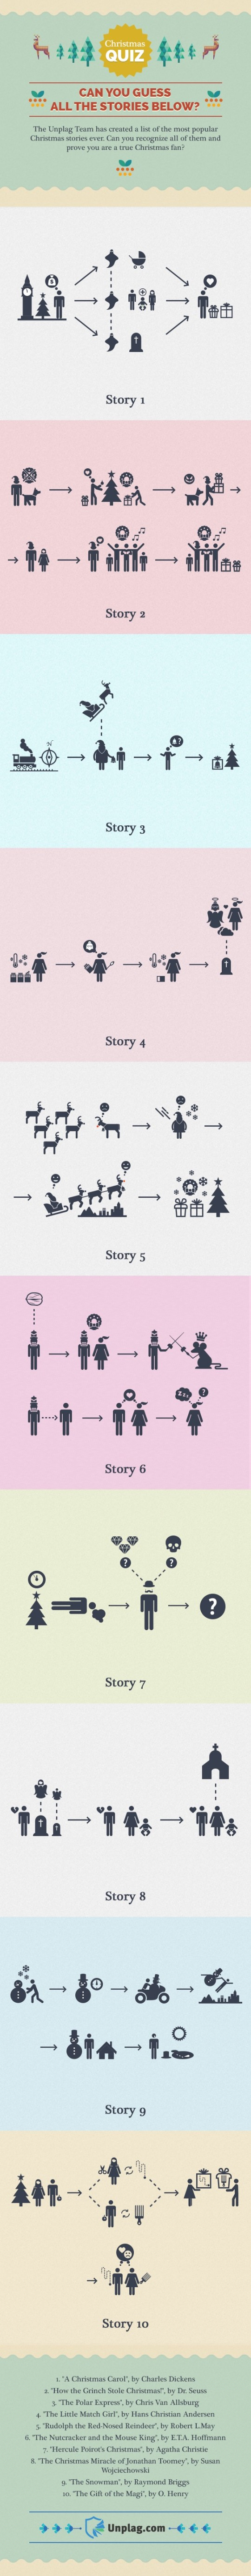 Famous Christmas stories in pictograms